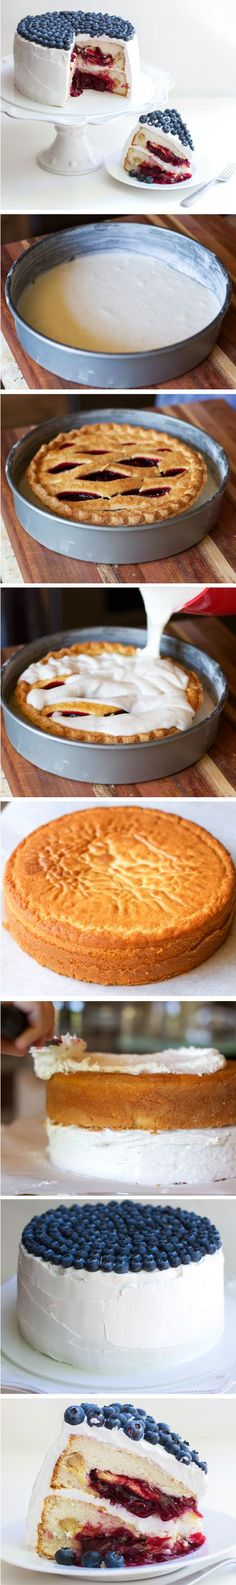 How to make a Double Layer Cherry Pie Cake